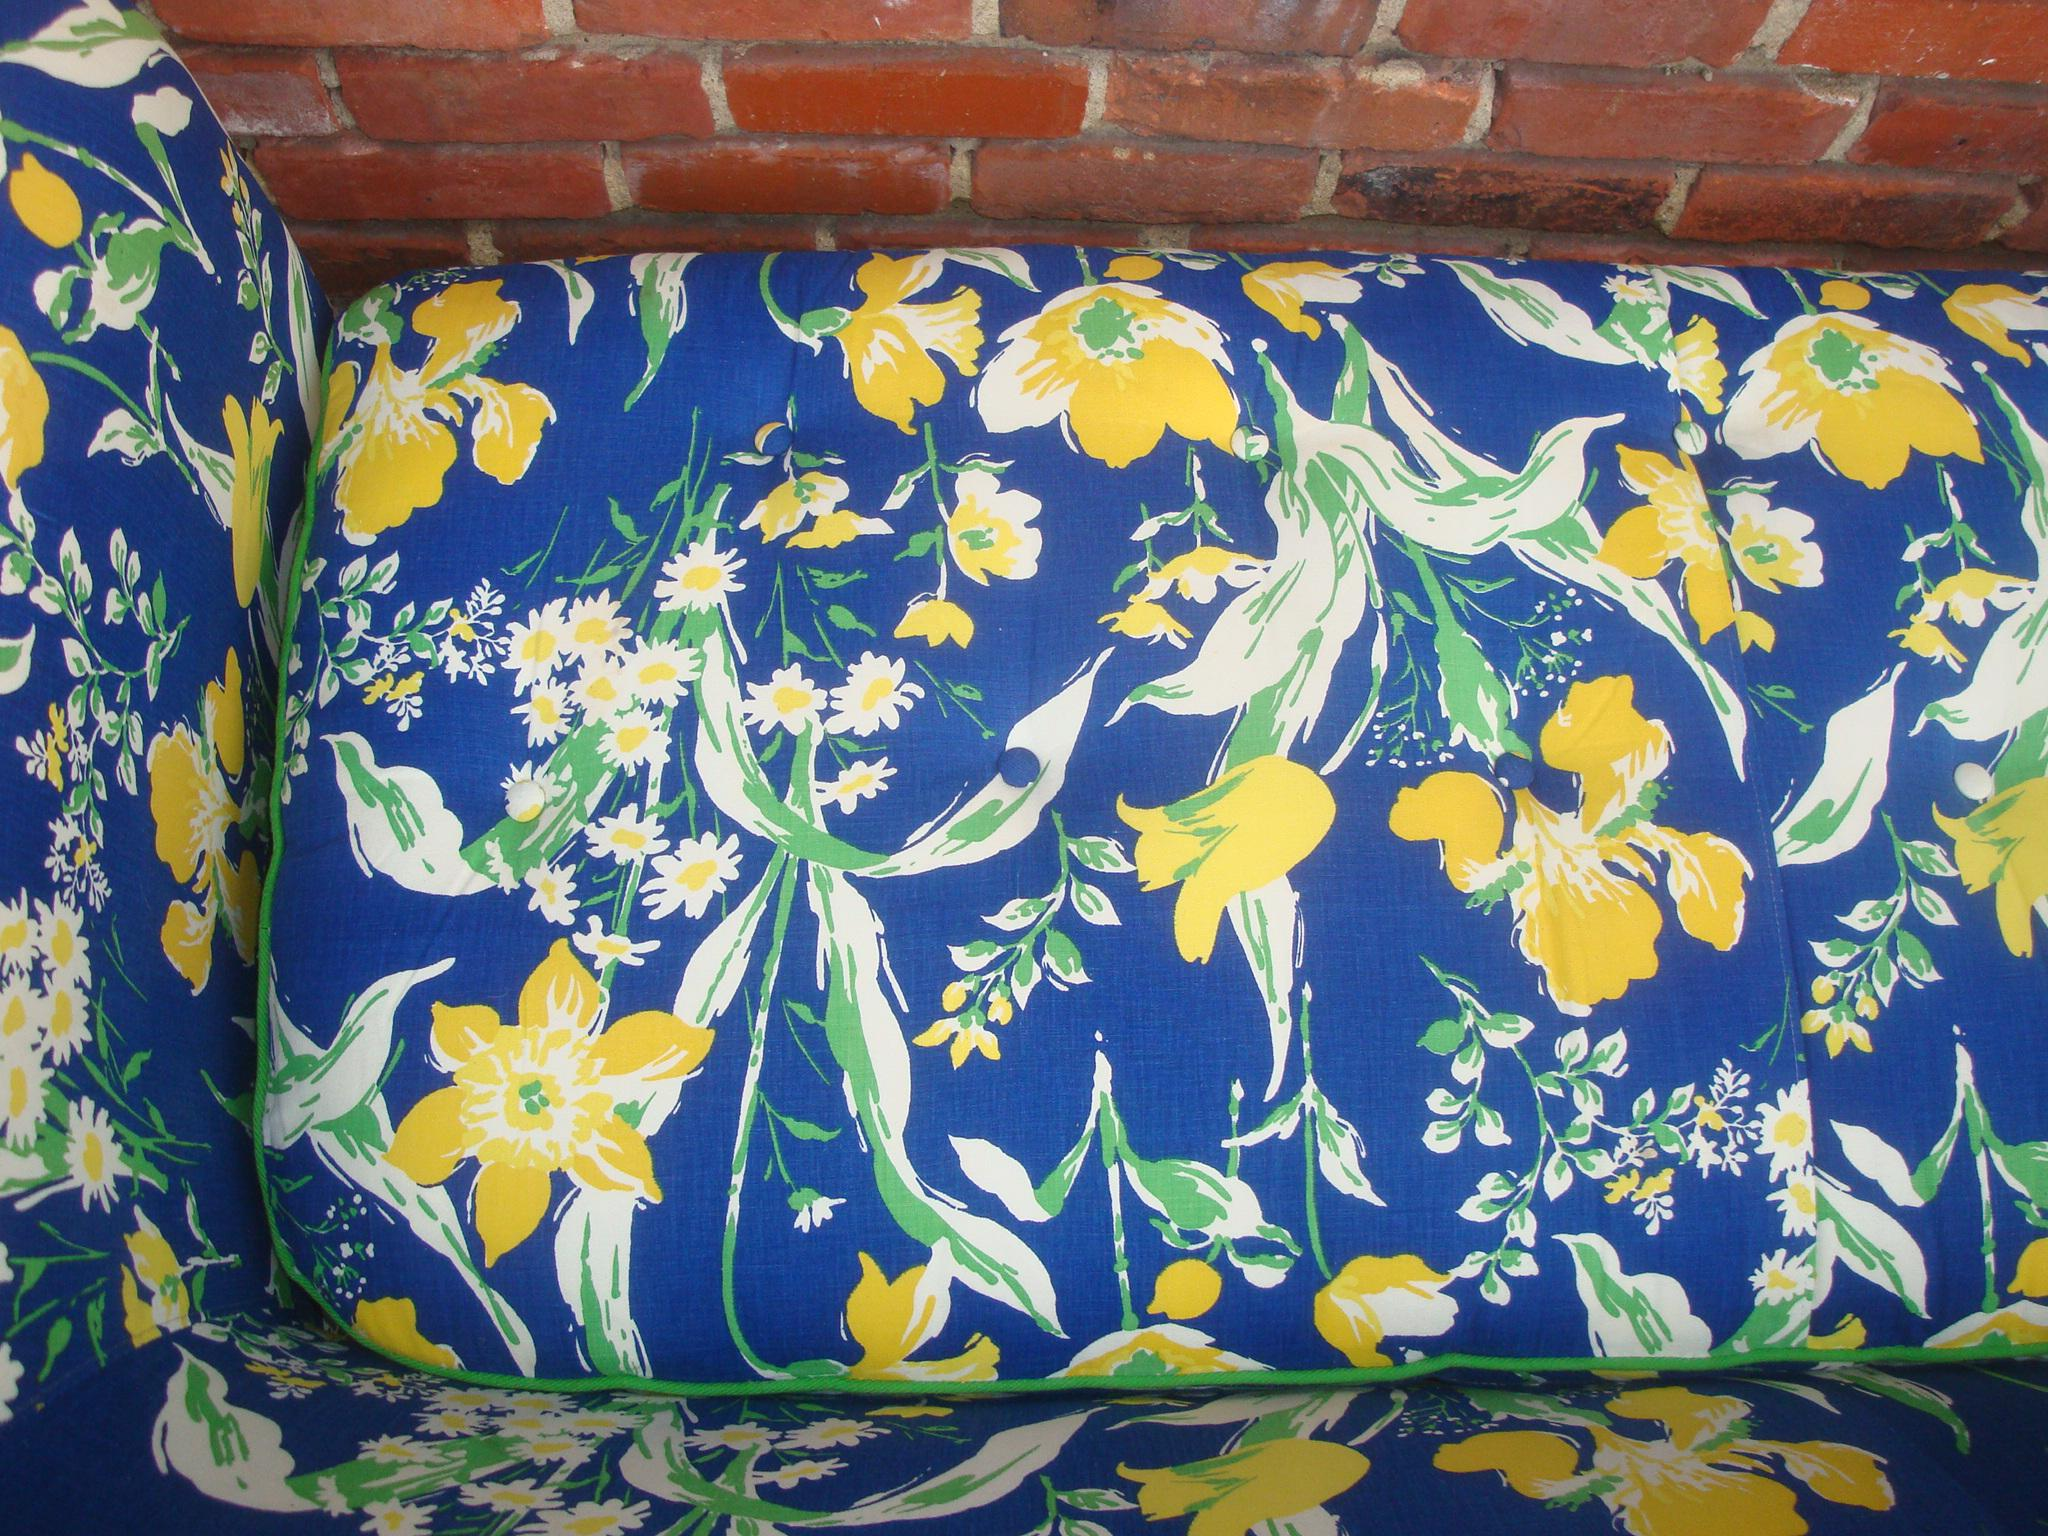 Cotton 1970s Blue U0026 Yellow Floral Sofa By Highland House Of Hickory For  Sale   Image